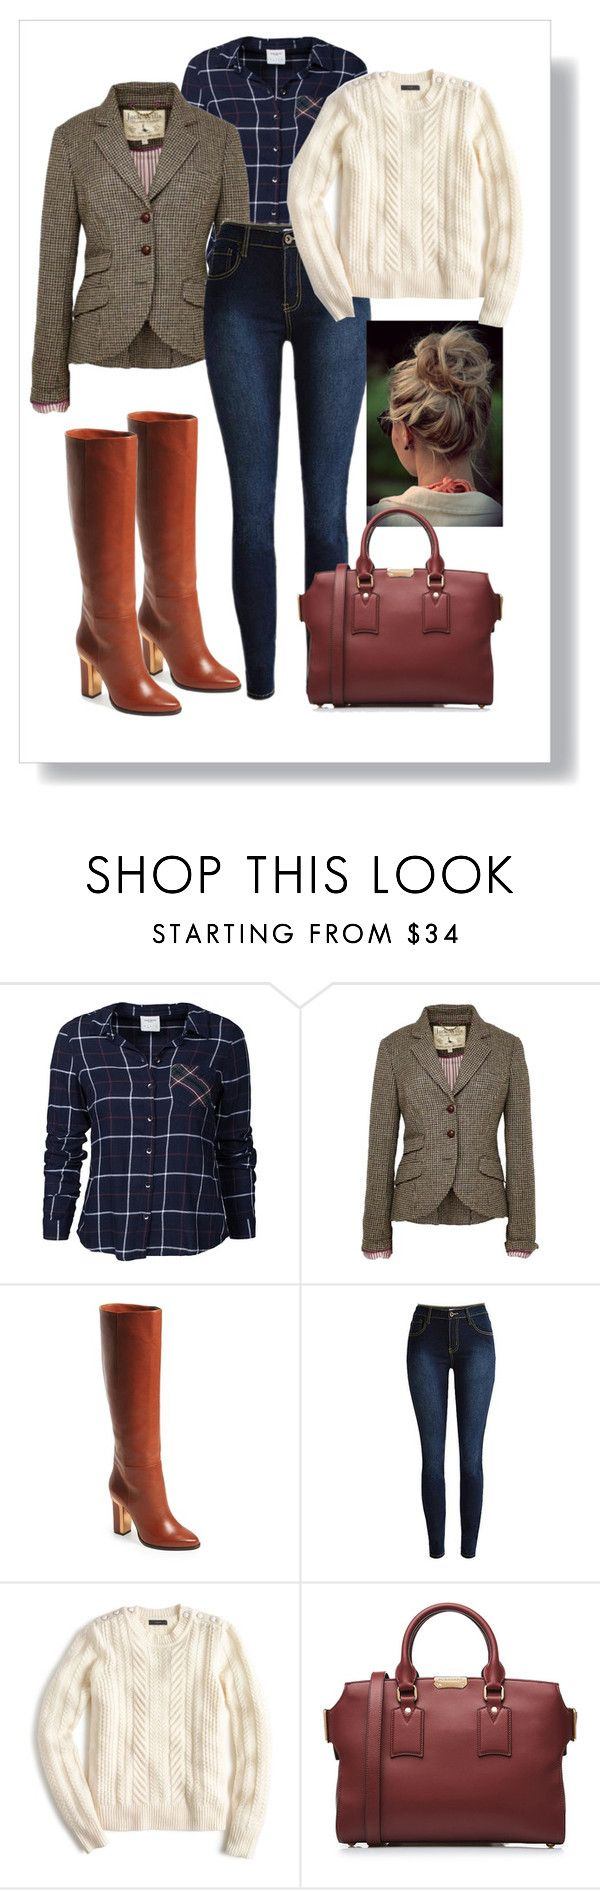 """""""Day at St Andrews"""" by lorilee3131 ❤ liked on Polyvore featuring Vero Moda, Jack Wills, BCBGMAXAZRIA, J.Crew, Burberry, women's clothing, women's fashion, women, female and woman"""